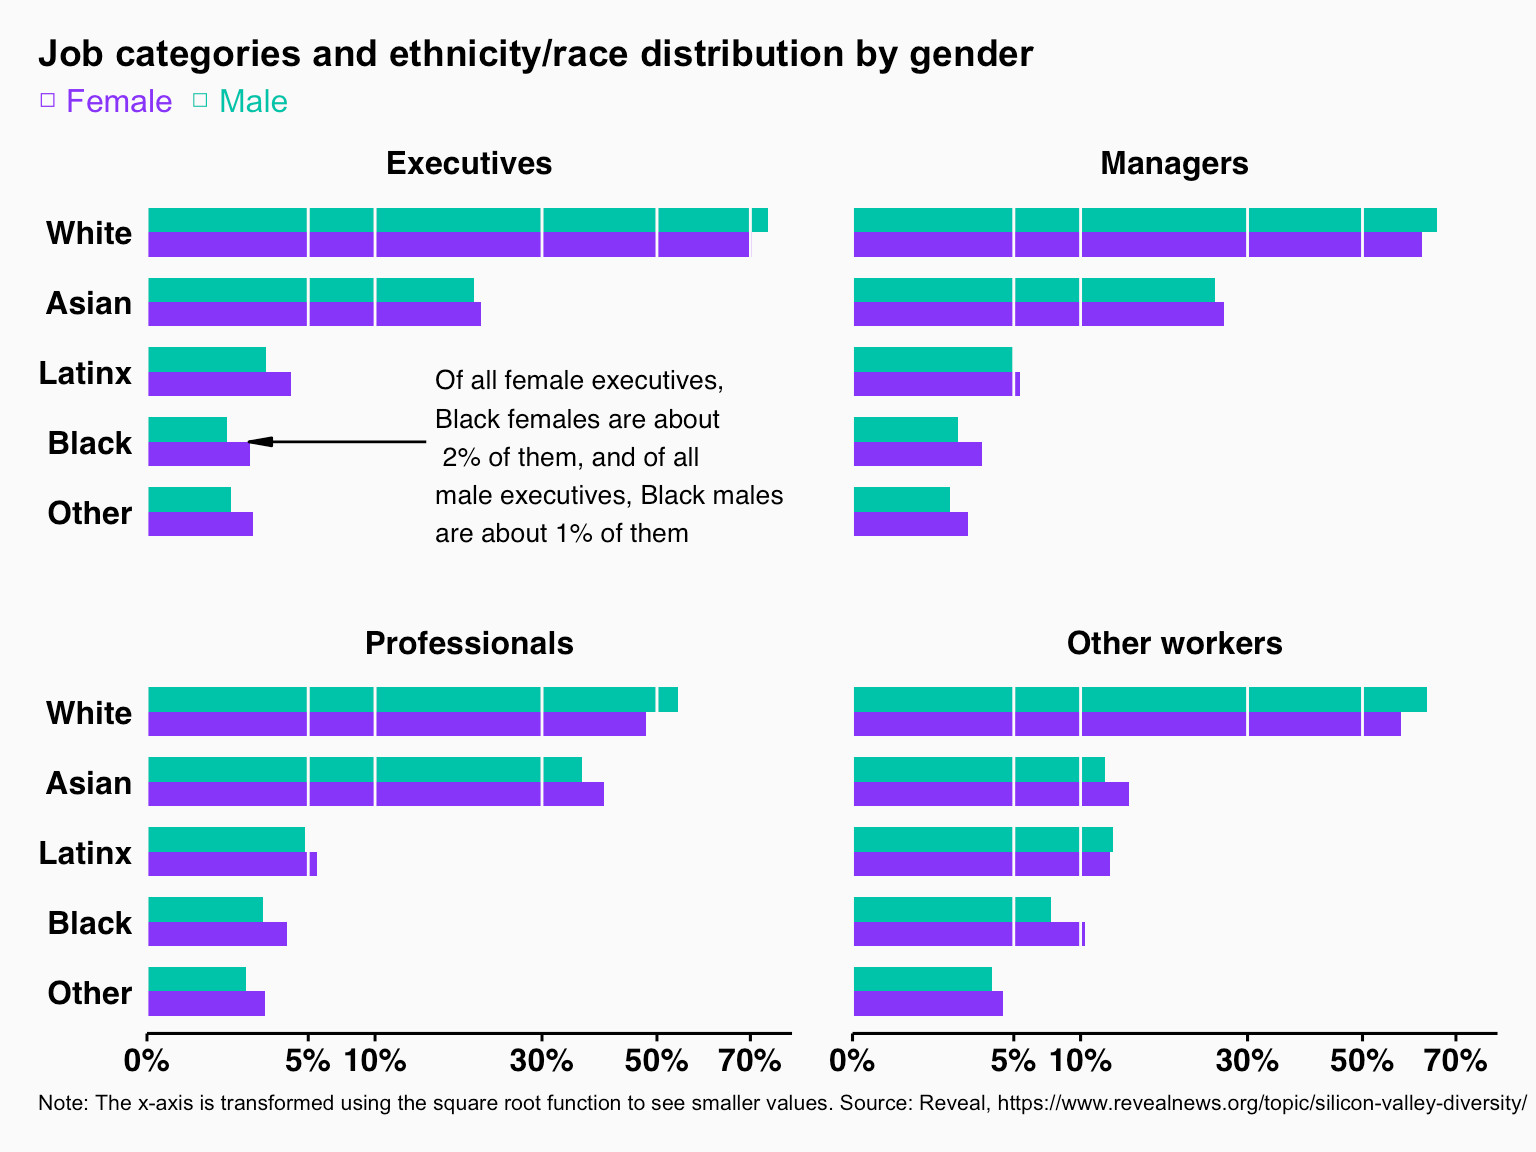 Side-by-side bar charts of job categories and ethnicity/race distribution by gender